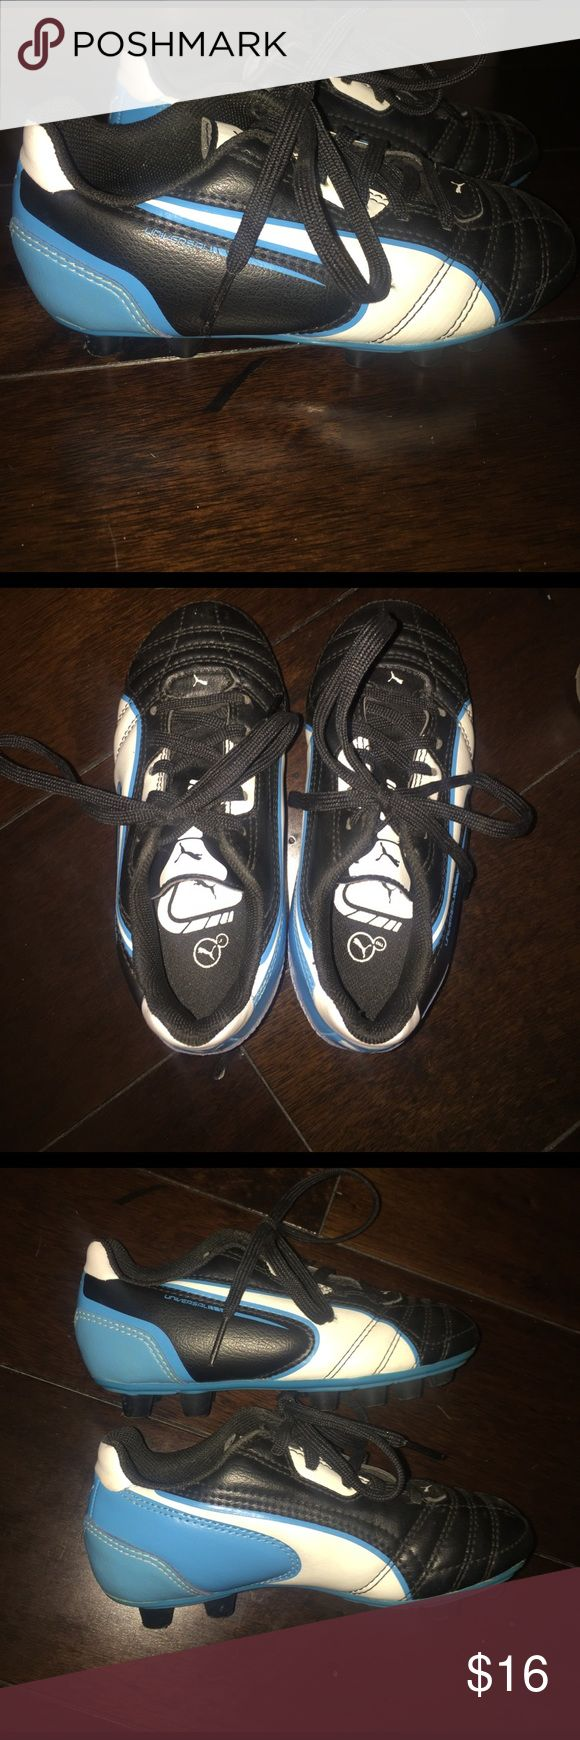 Puma toddler soccer cleats size 11 Puma toddler soccer cleats. Size 11. Worn a few times. Excellent condition. Puma Shoes Sneakers